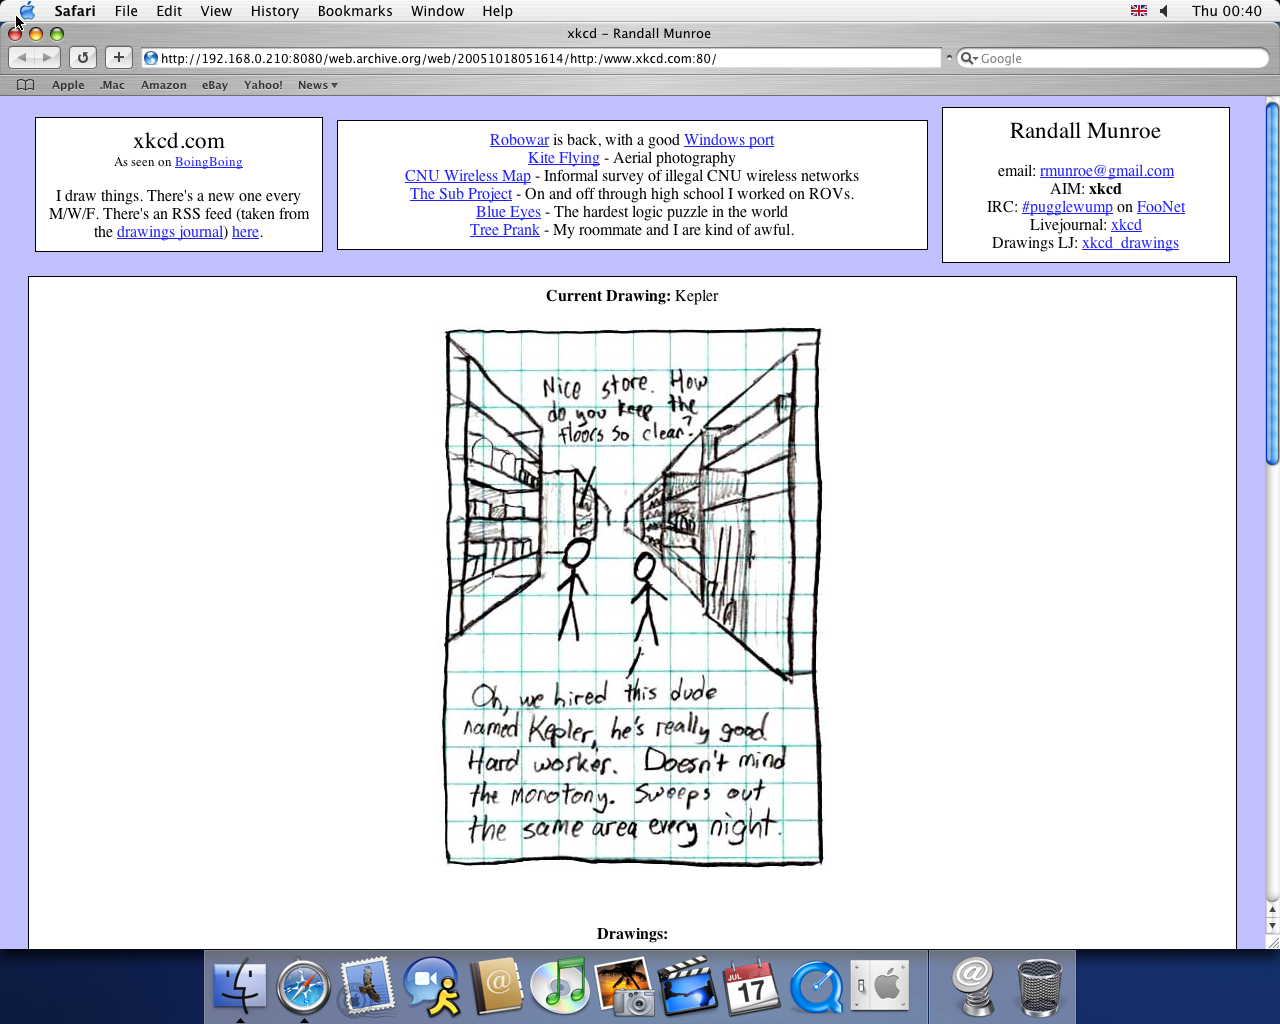 OS X 10.3 PPC with Safari 1.1 displaying a page from XKCD archived at October 18, 2005 at 05:16:14